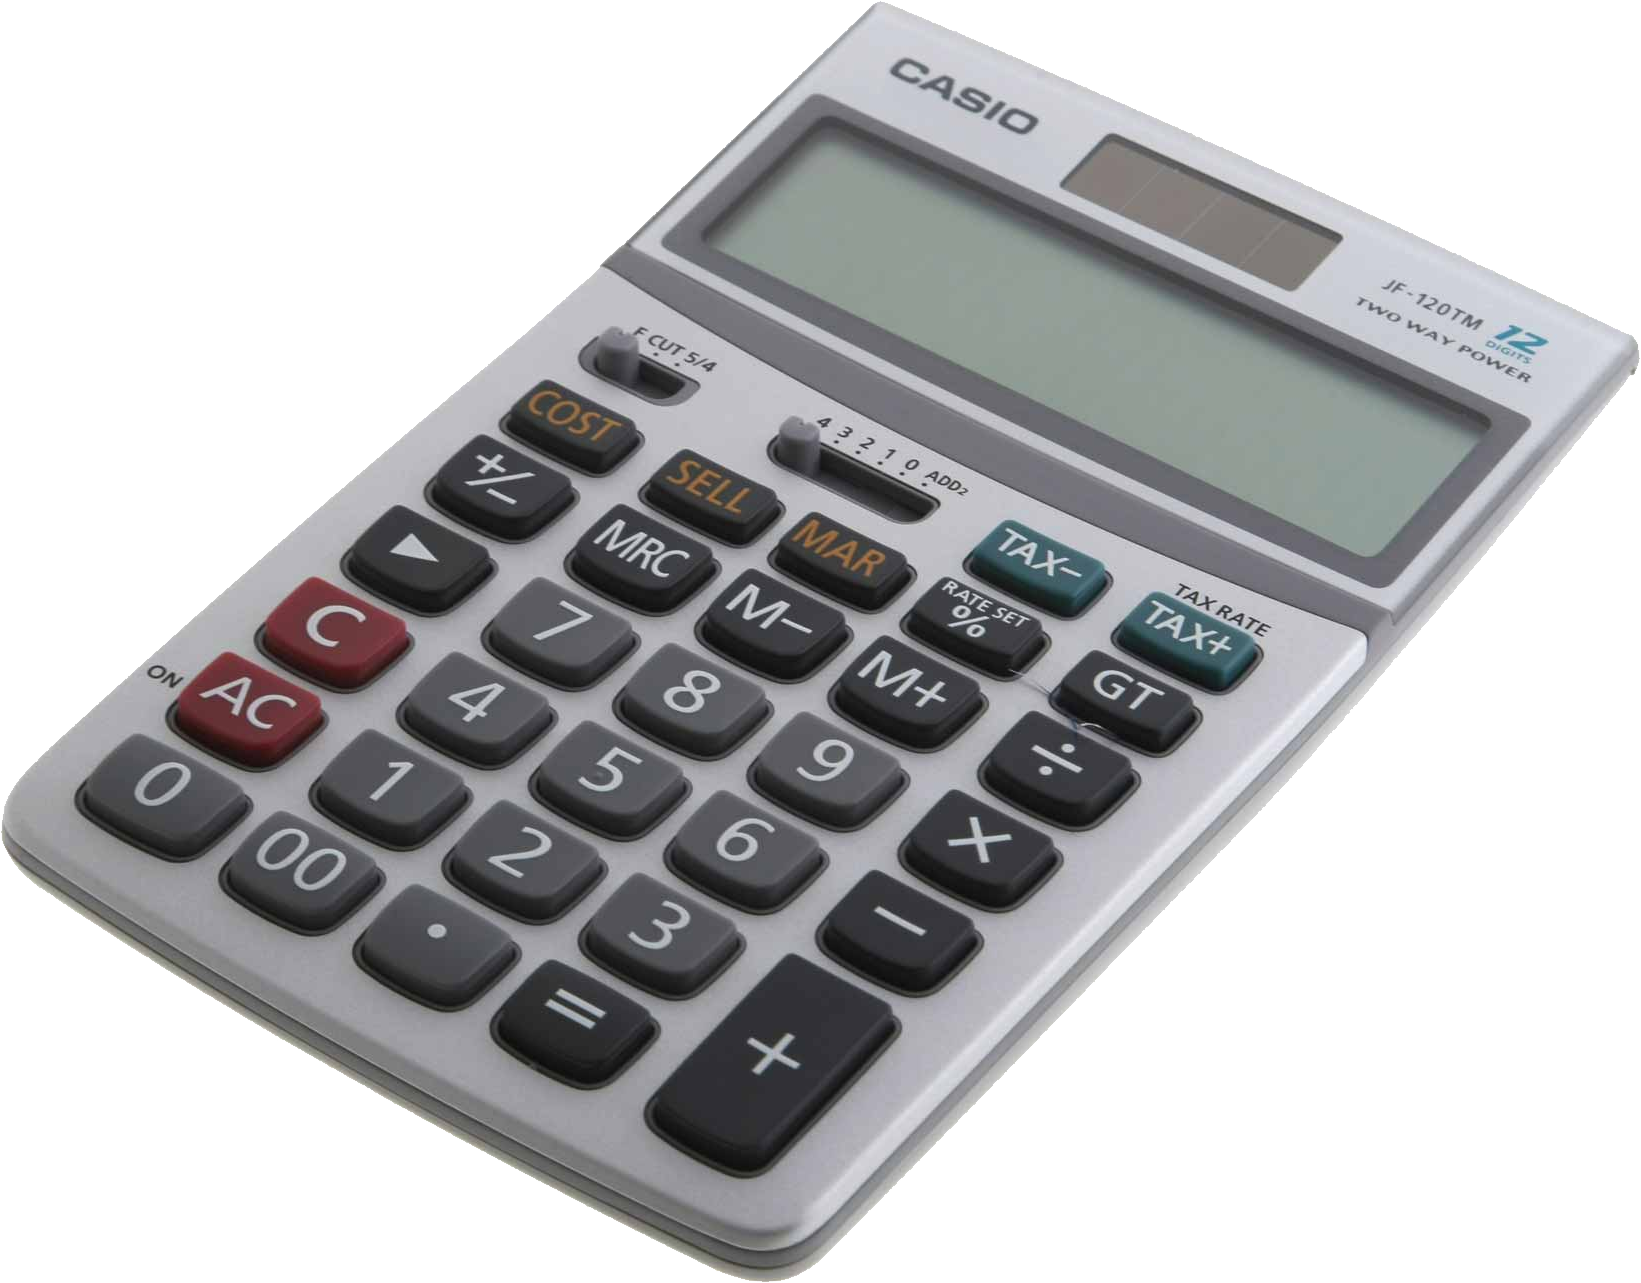 Calculator Png File PNG Image